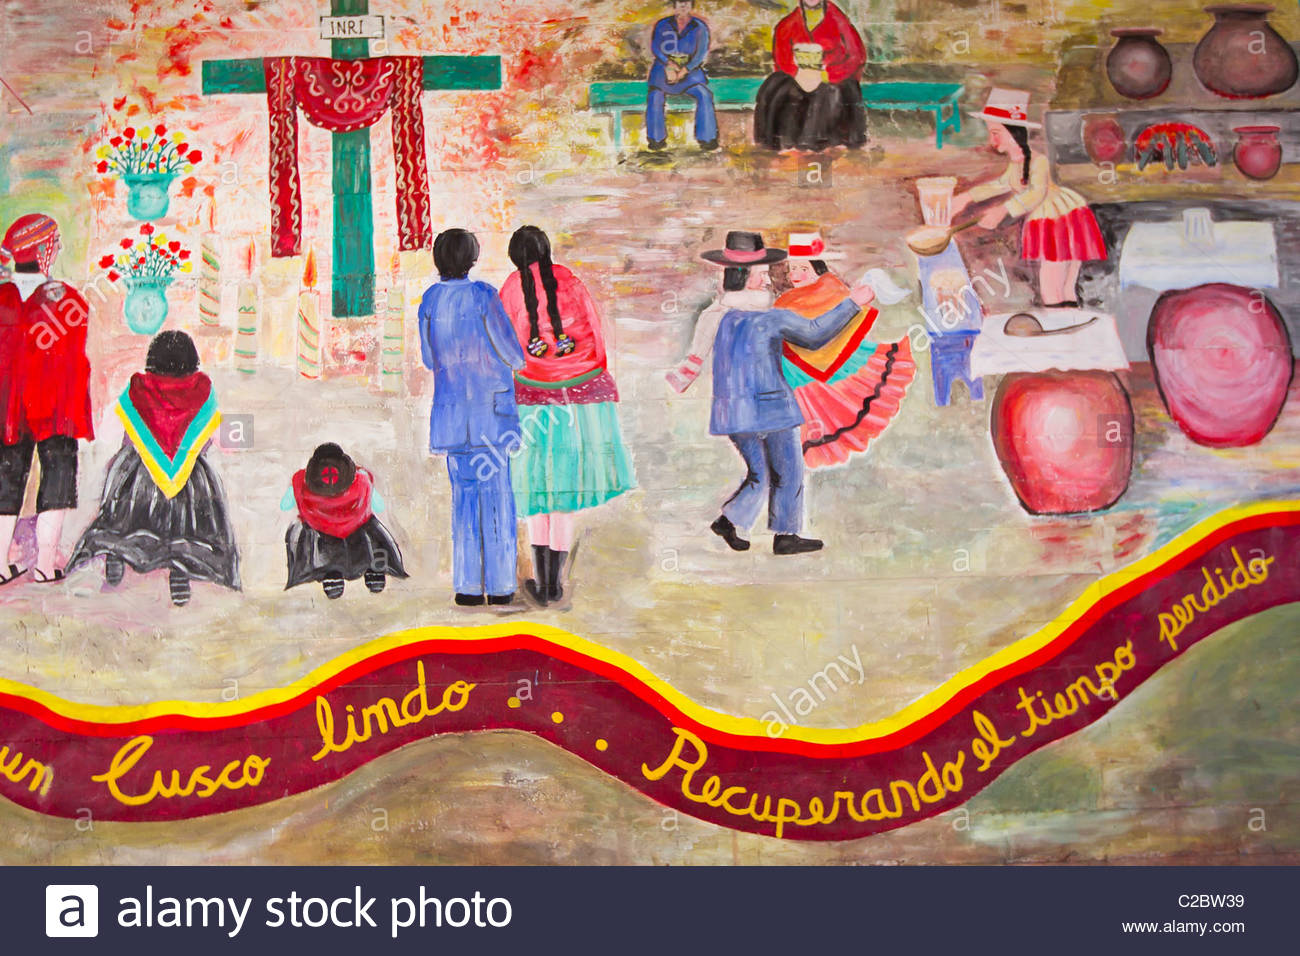 Mural painting depicting local life on a wall in downtown Cusco. - Stock Image